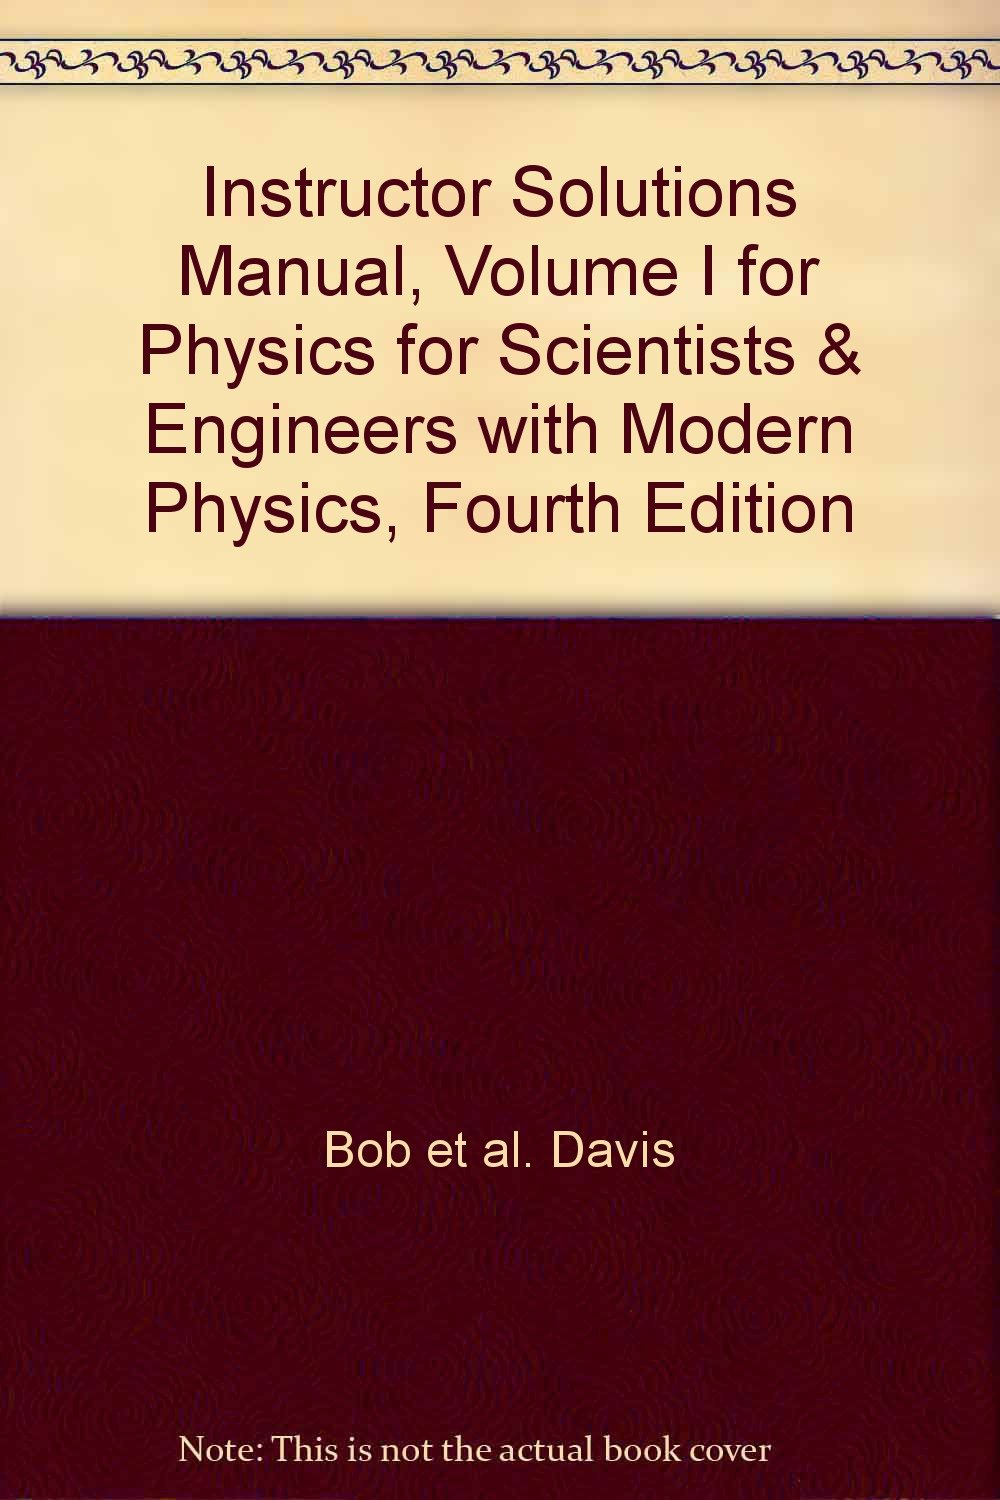 Instructor Solutions Manual, Volume I for Physics for Scientists & Engineers  with Modern Physics, Fourth Edition: Bob et al.